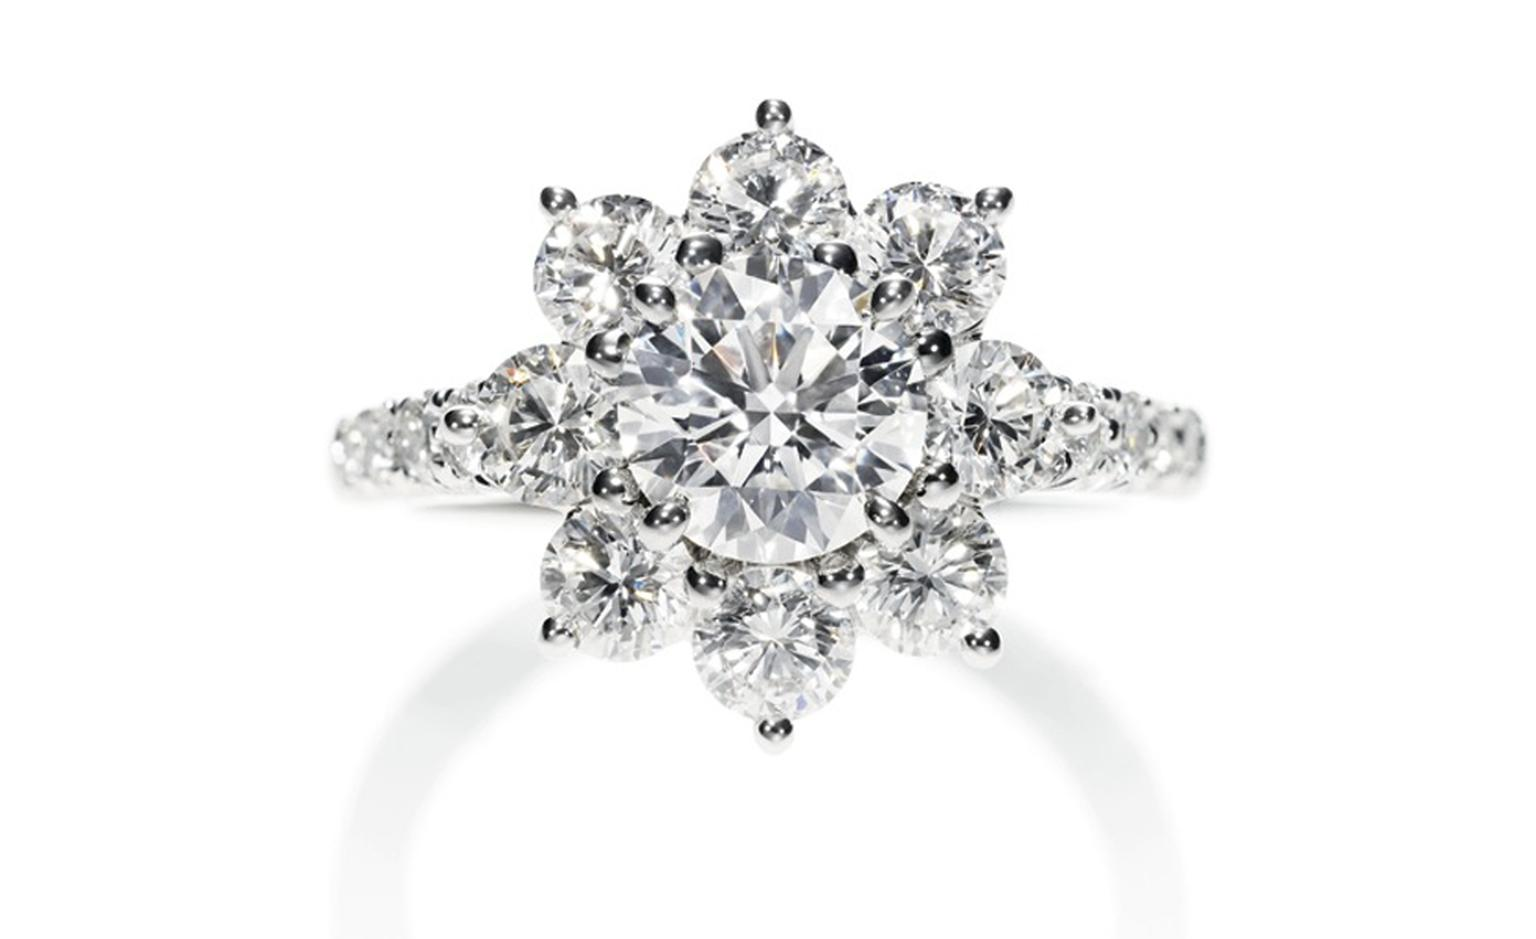 Sunflower Collection by Harry Winston, diamond ring worn by Michelle Williams